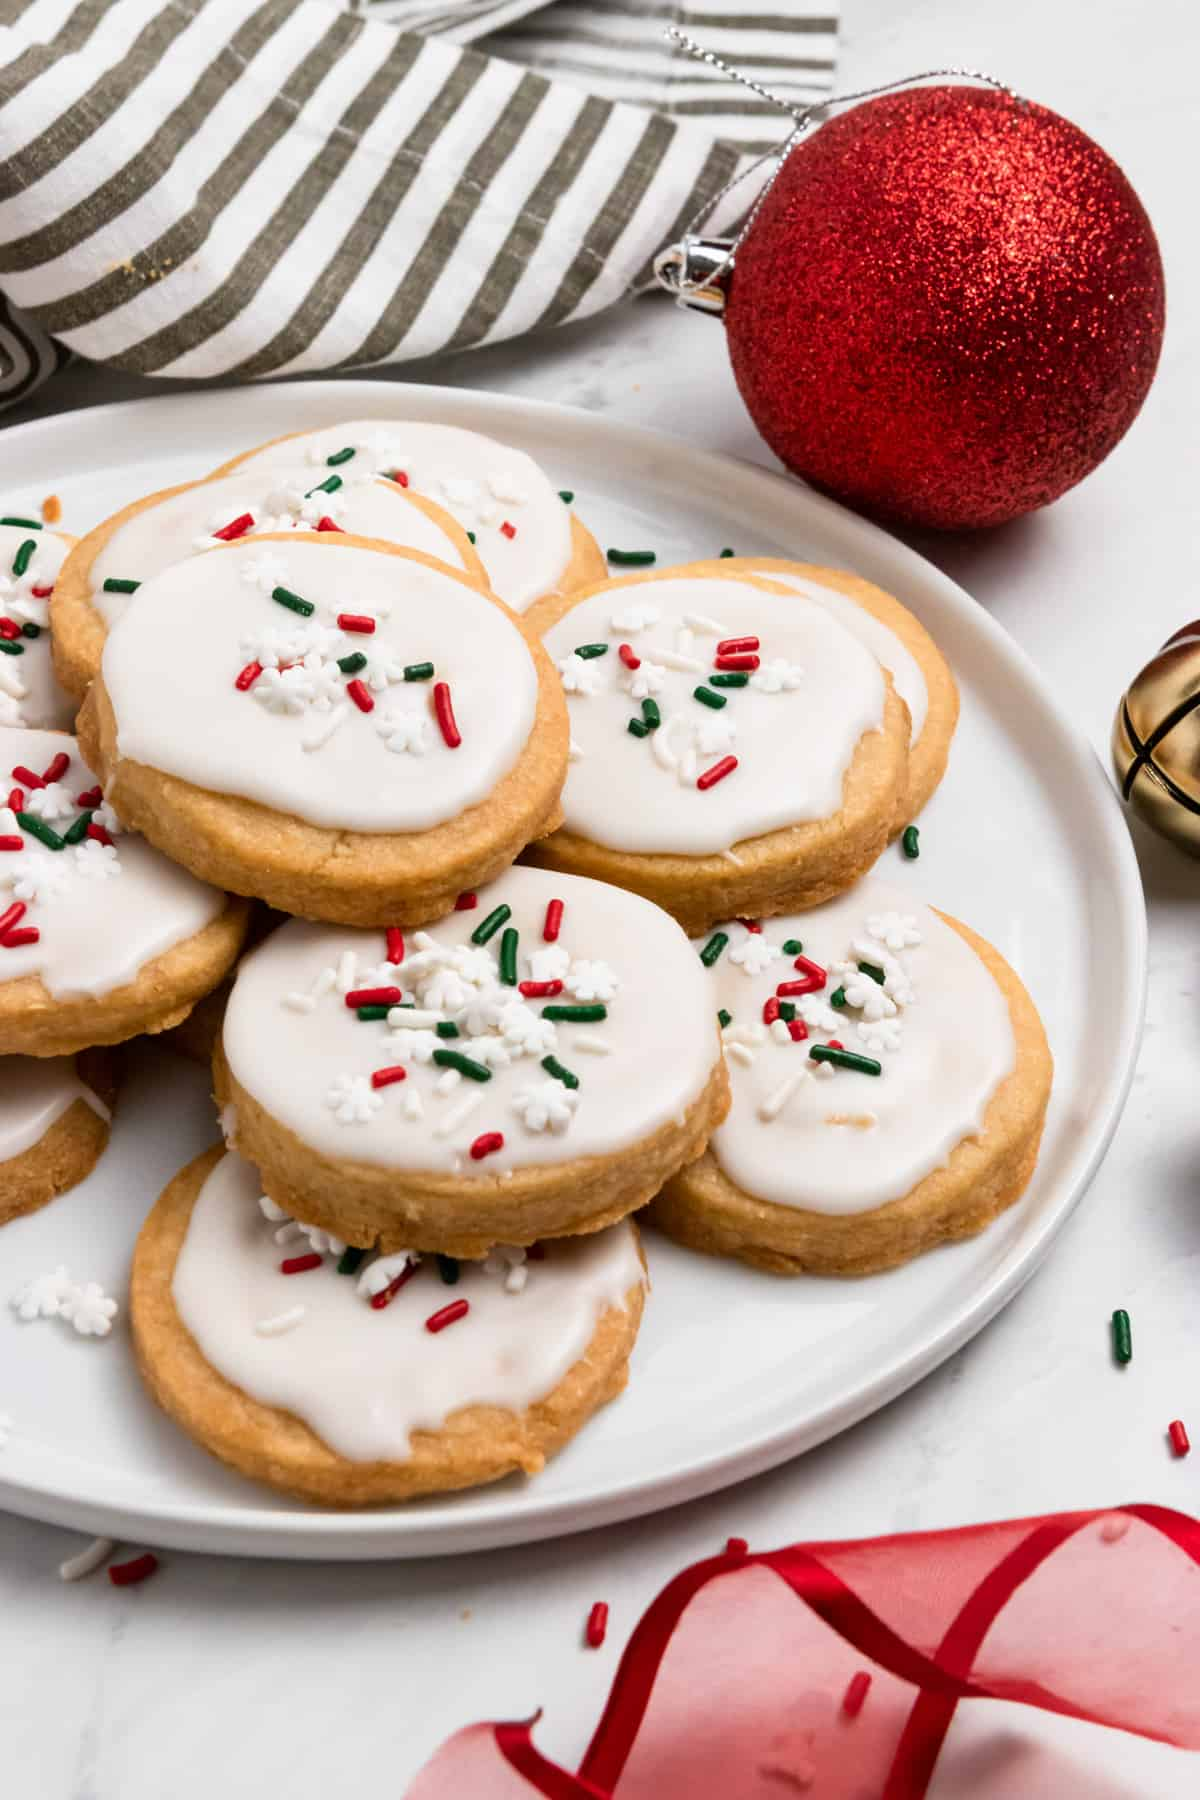 Christmas shortbread cookies on plate with red and green sprinkles.